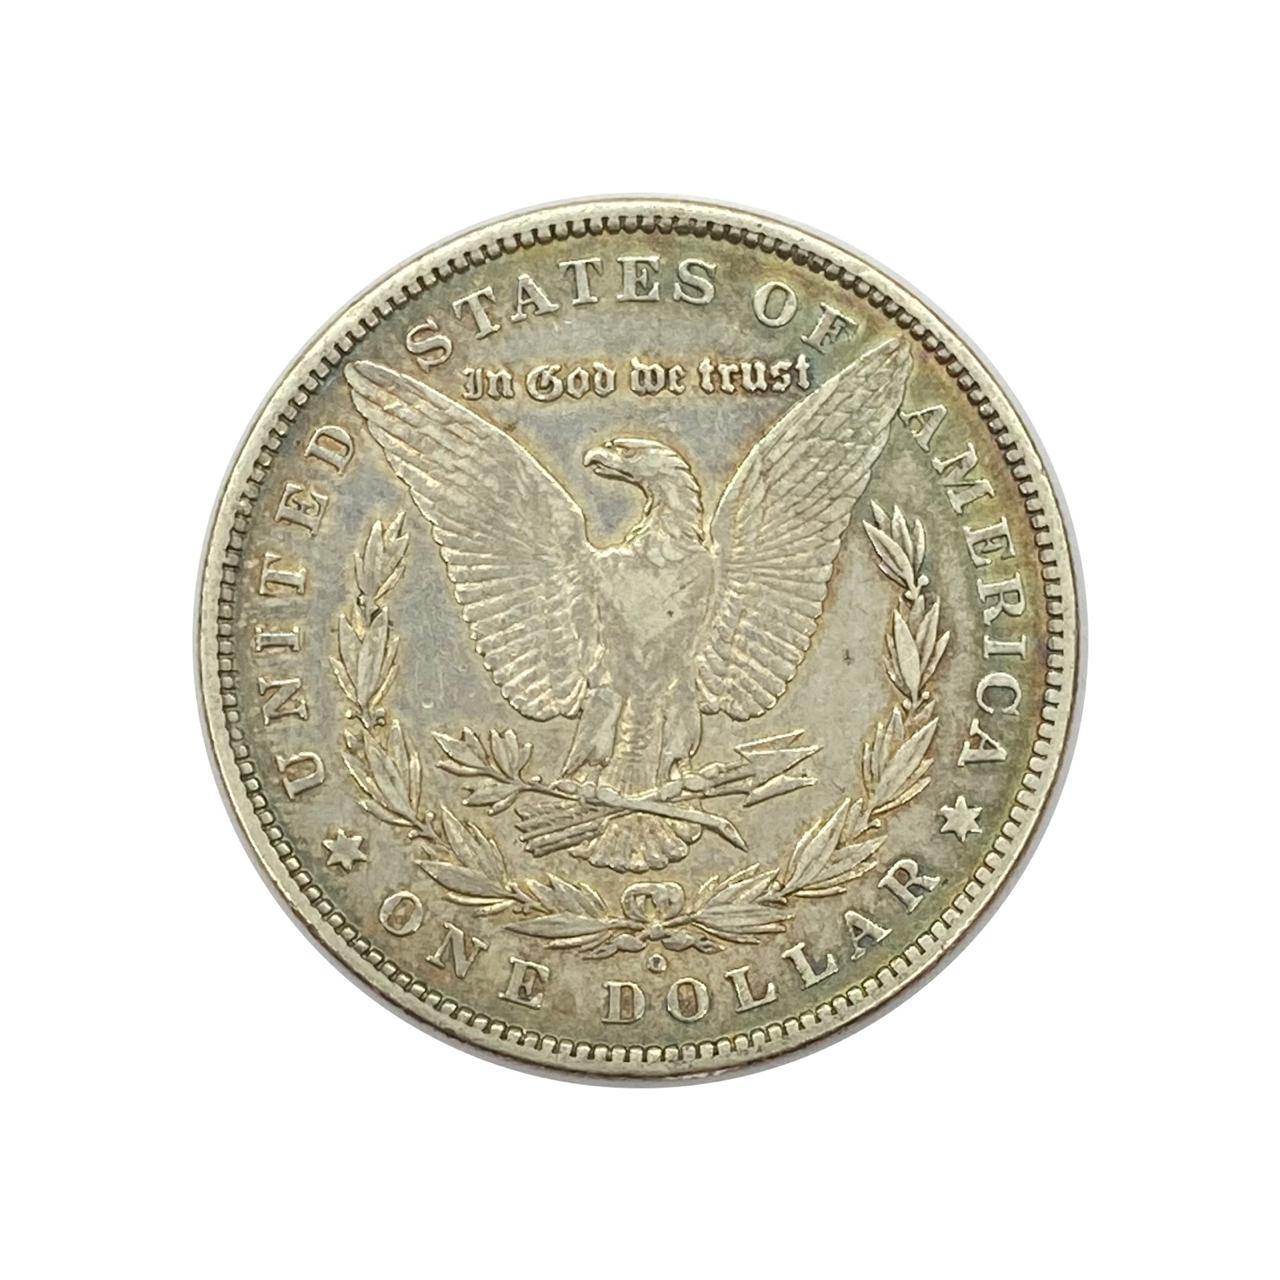 1 Dólar Morgan Dollar-1880